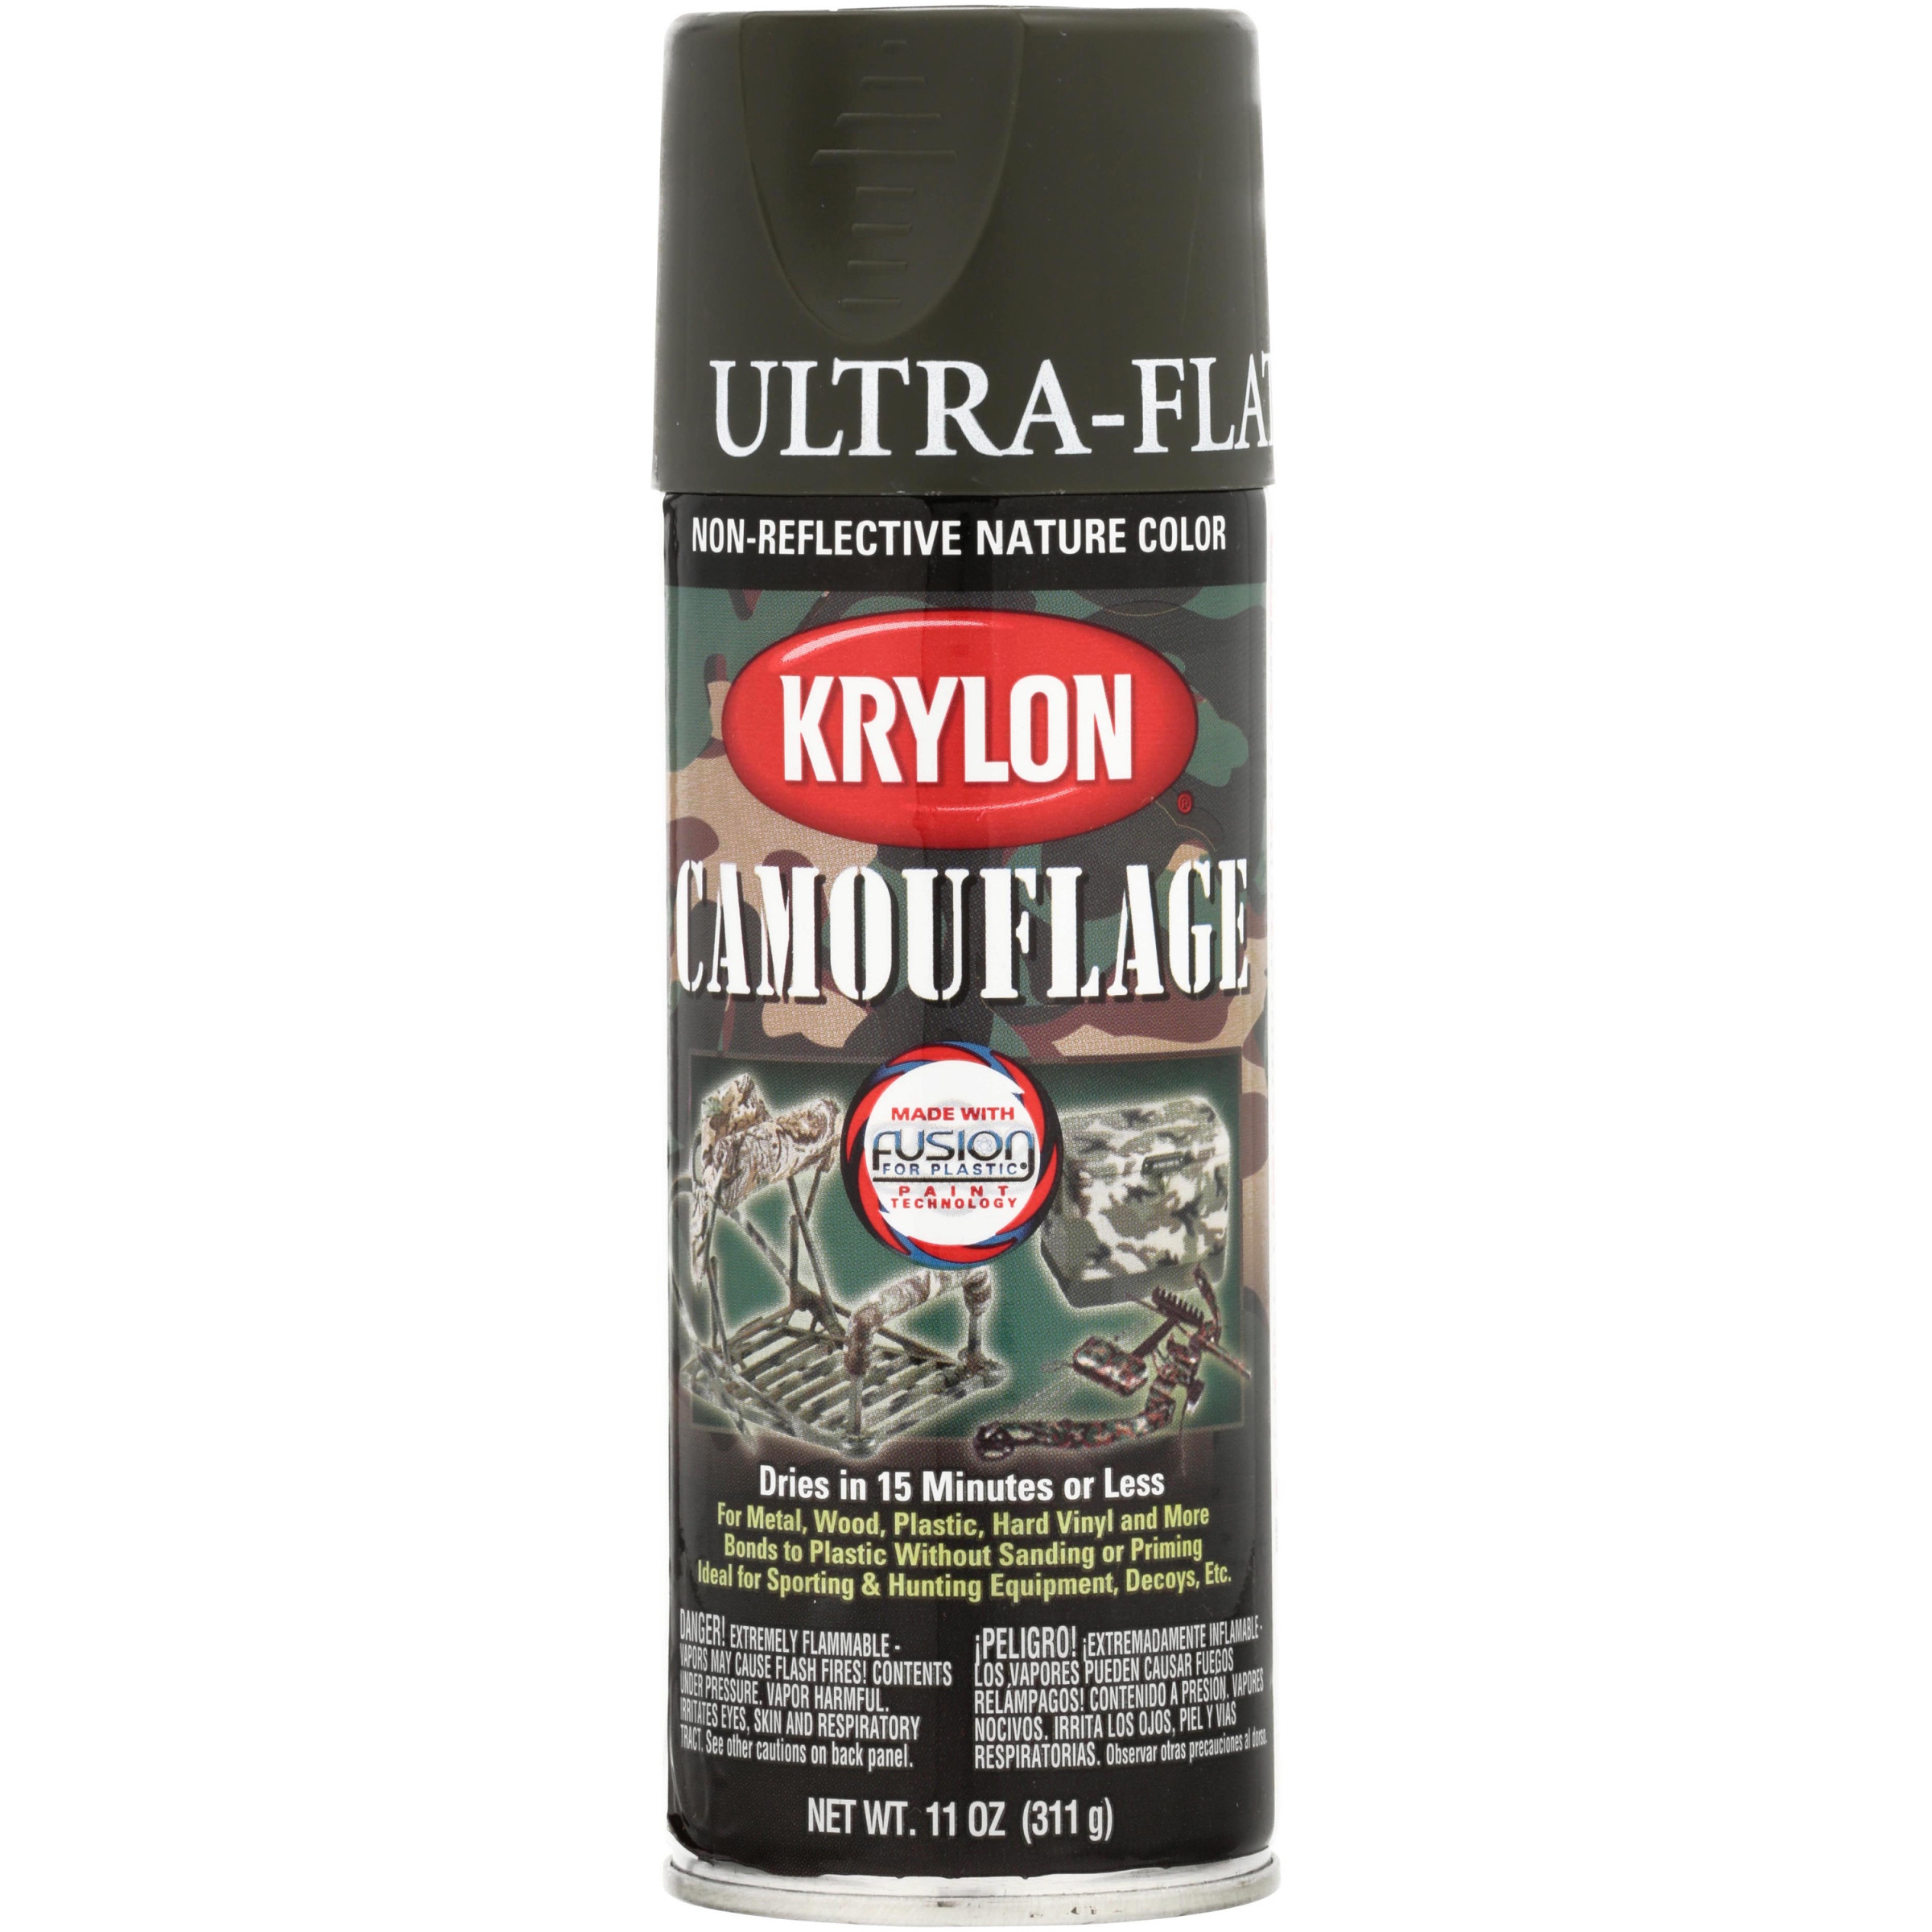 Hardwood Floor Refinishing Yorktown Va Of Krylona Ultra Flat Non Reflective Nature Color Olive Camouflage within Krylona Ultra Flat Non Reflective Nature Color Olive Camouflage Spray Paint 11 Oz Can Walmart Com